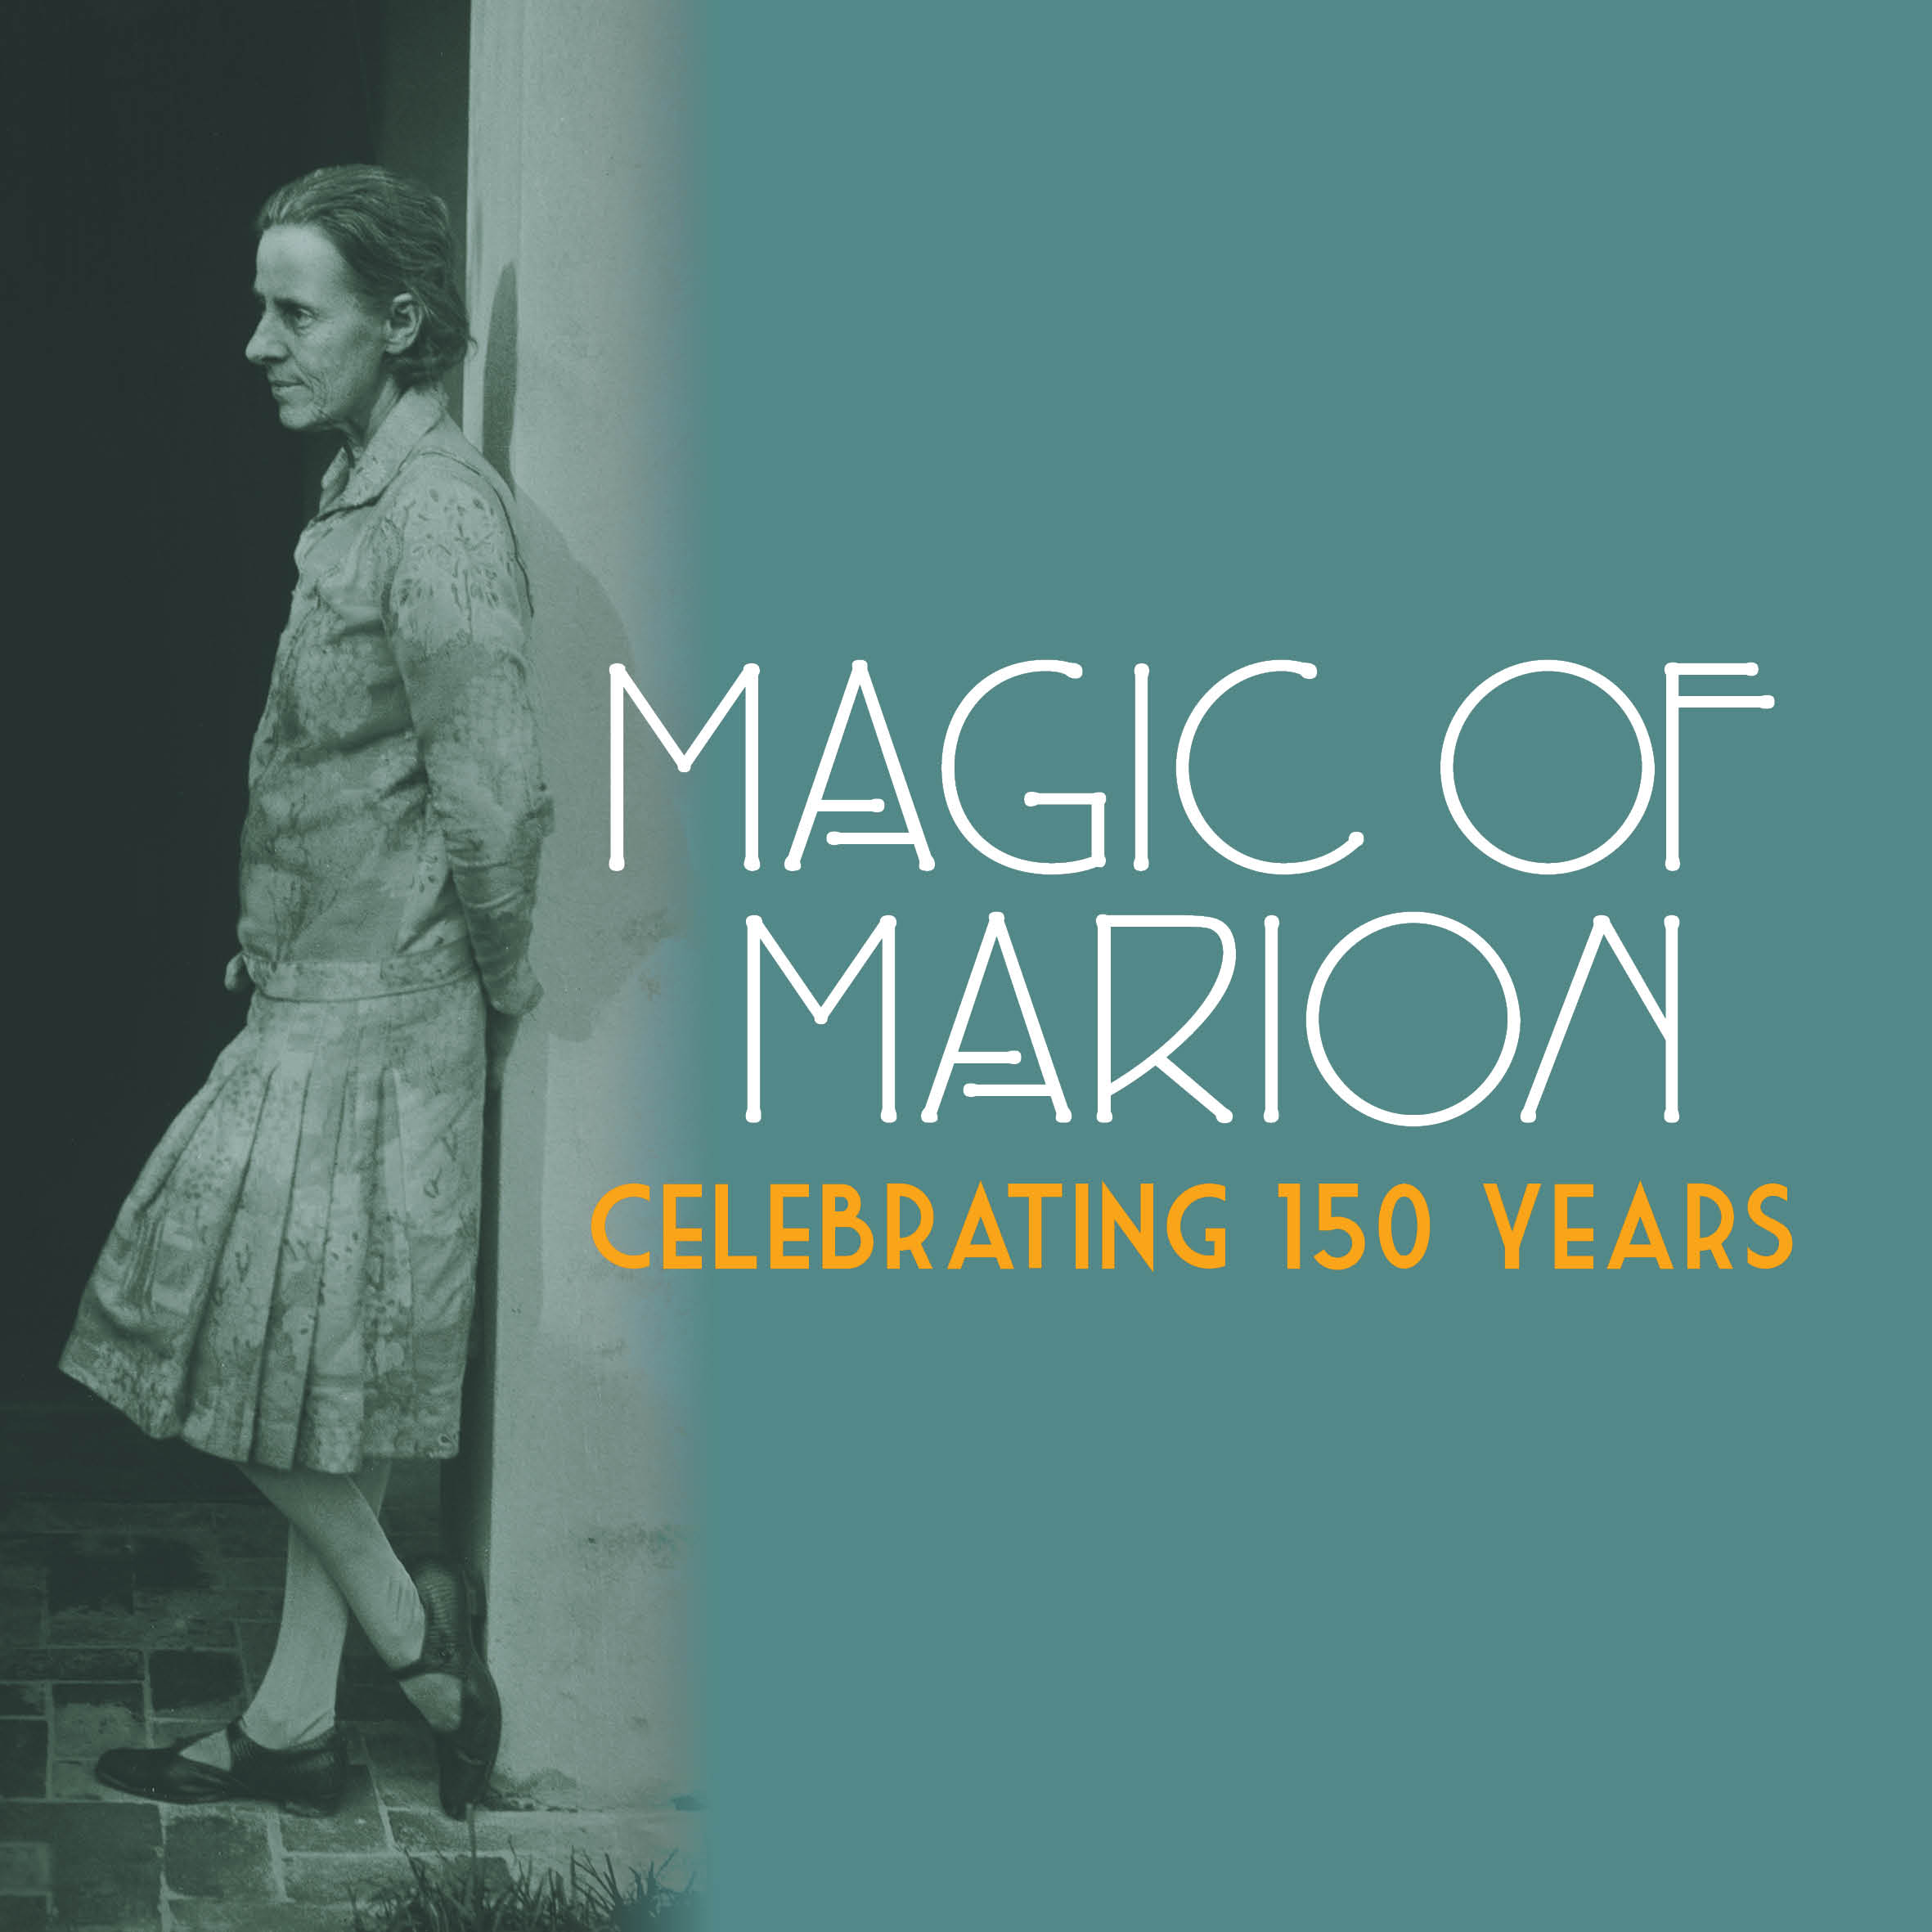 Magic of Marion